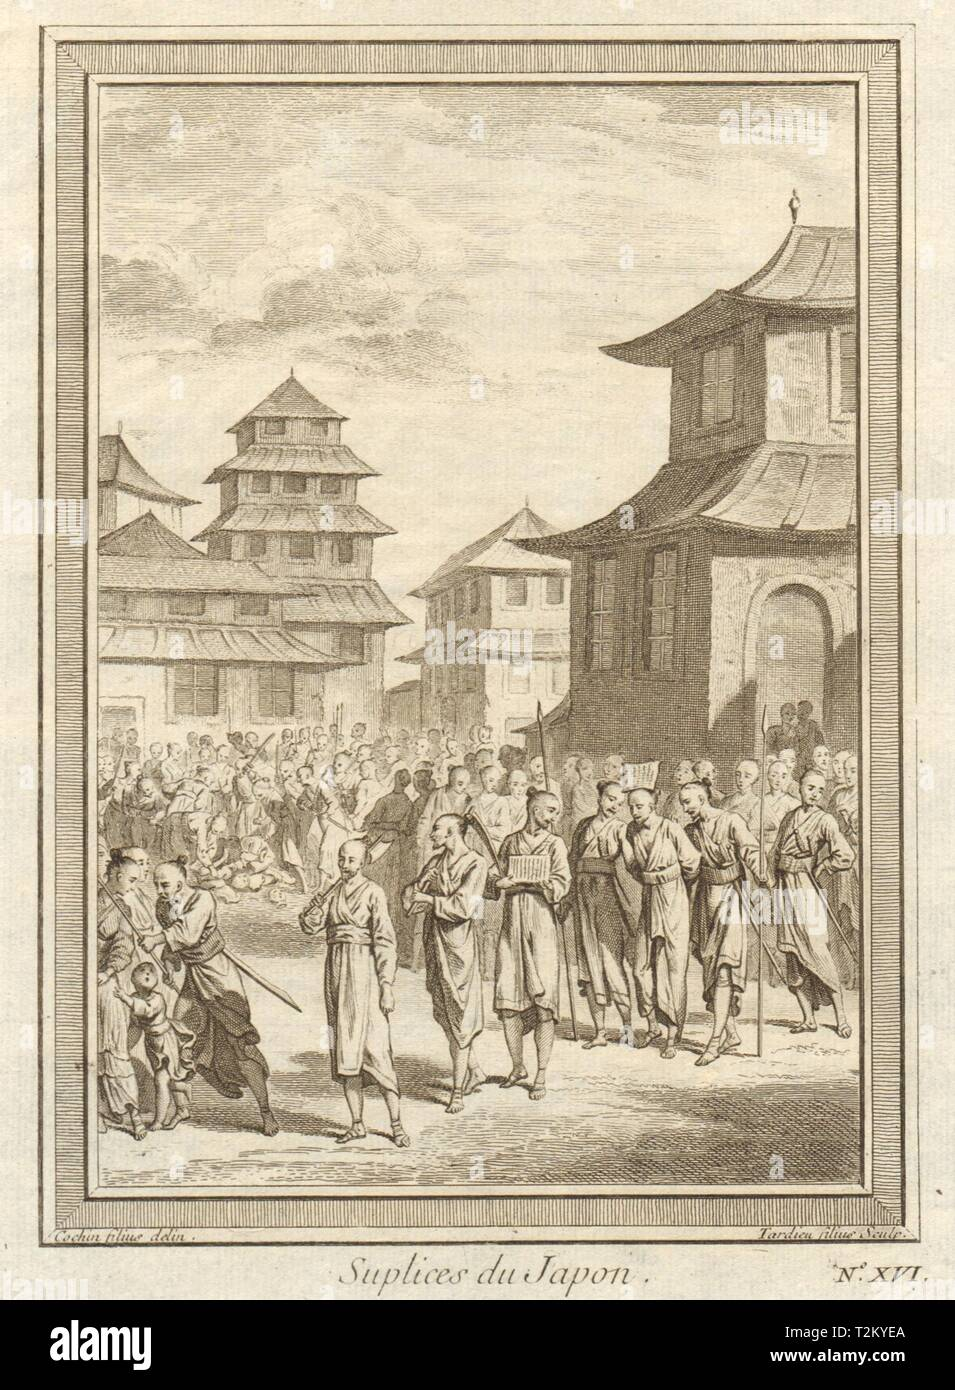 'Suplices du Japon'. Japanese punishments. Execution by sword 1746 old print - Stock Image